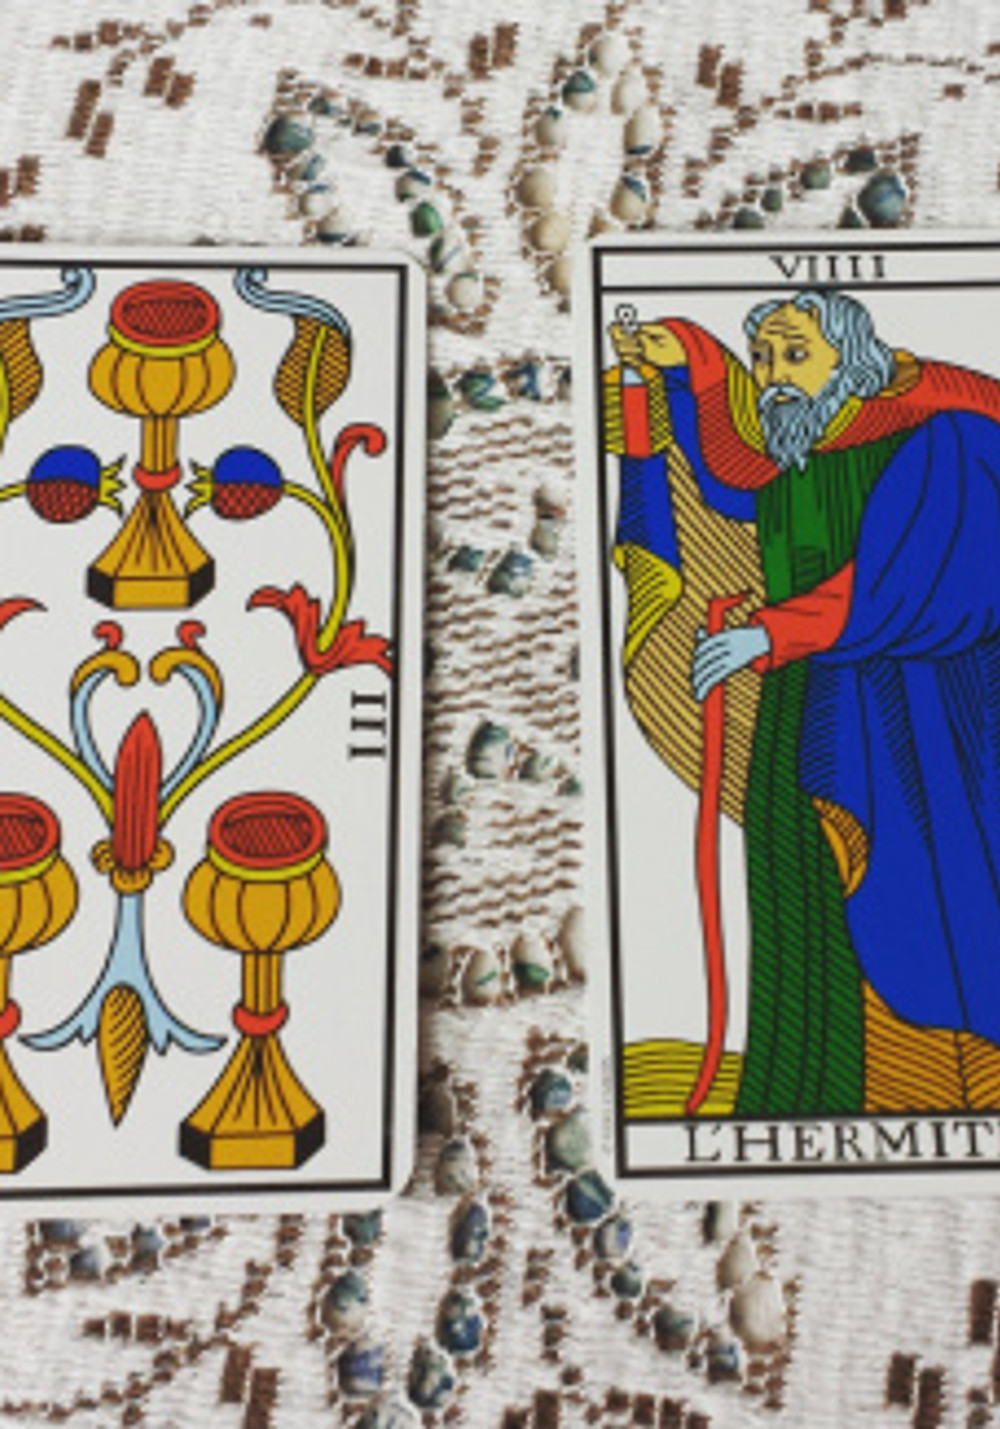 Daily Tarot with Asha Mara the Hermit and the 3 of Cups